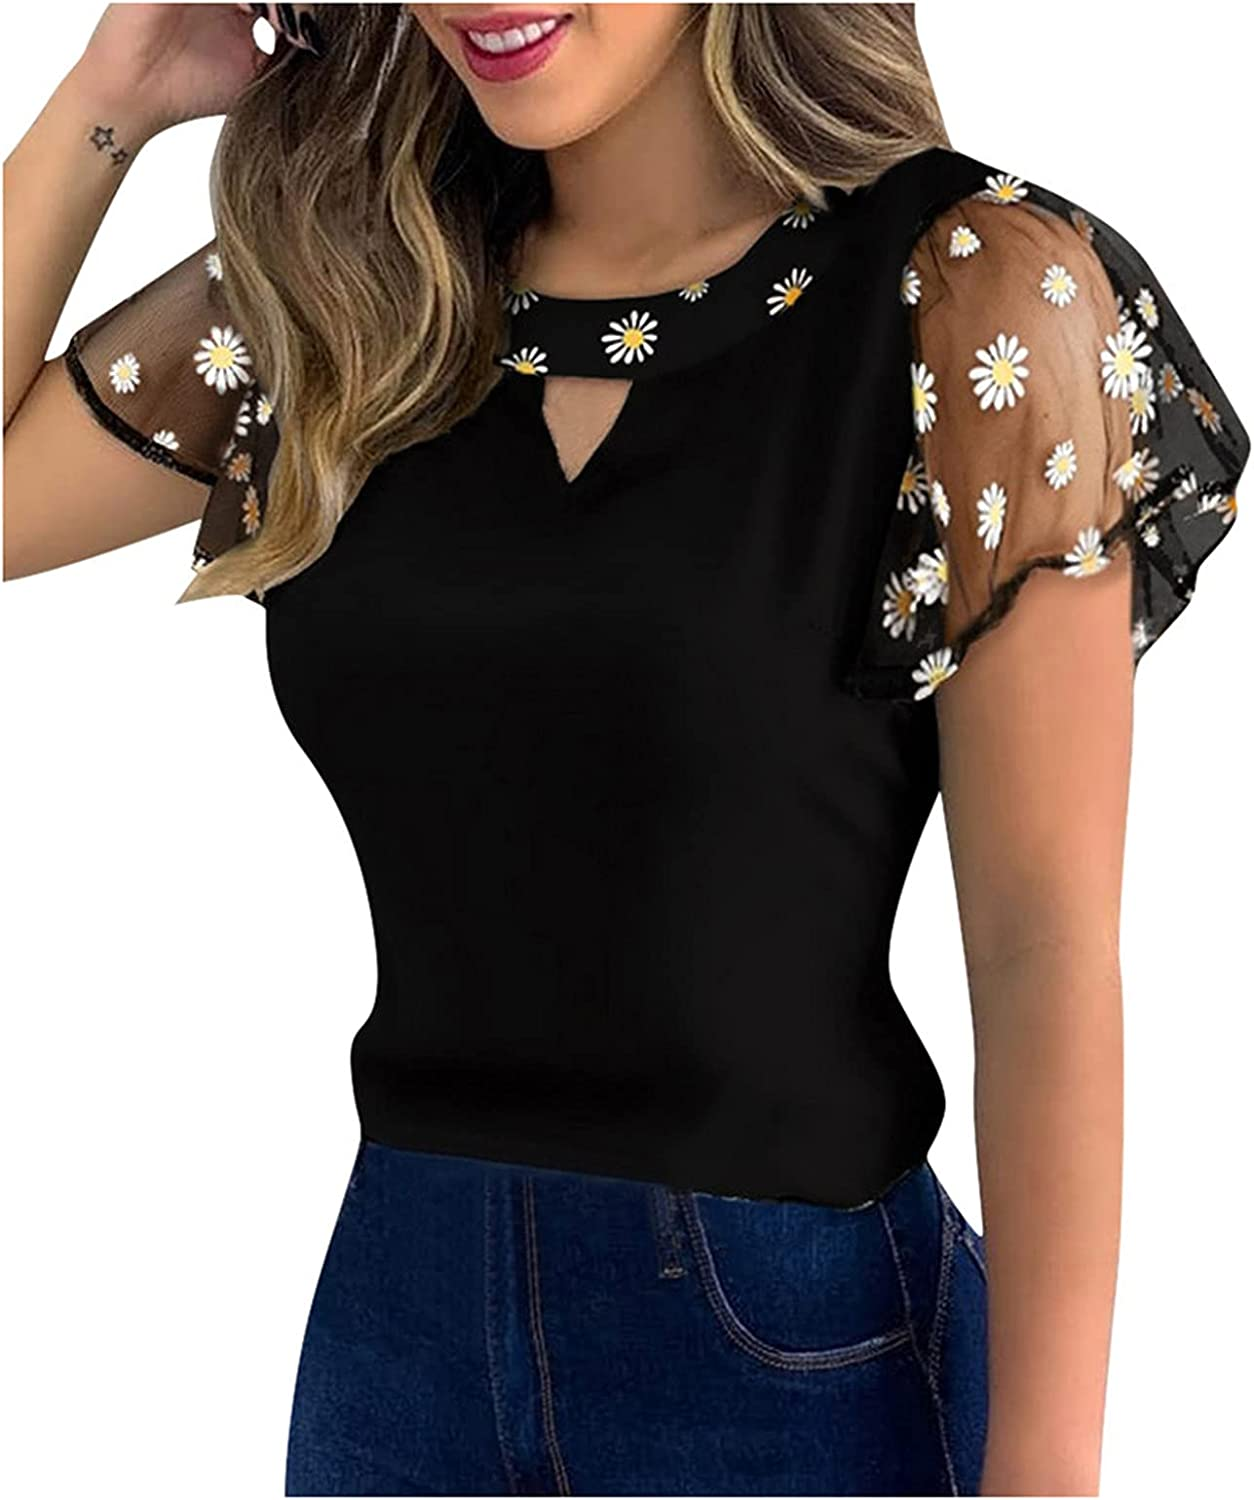 Womens Summer Tops Women Casual Daisy Embroidery Lace Lotu Sleeve Hollow Out T-Shirt Tops Womens Tops Black